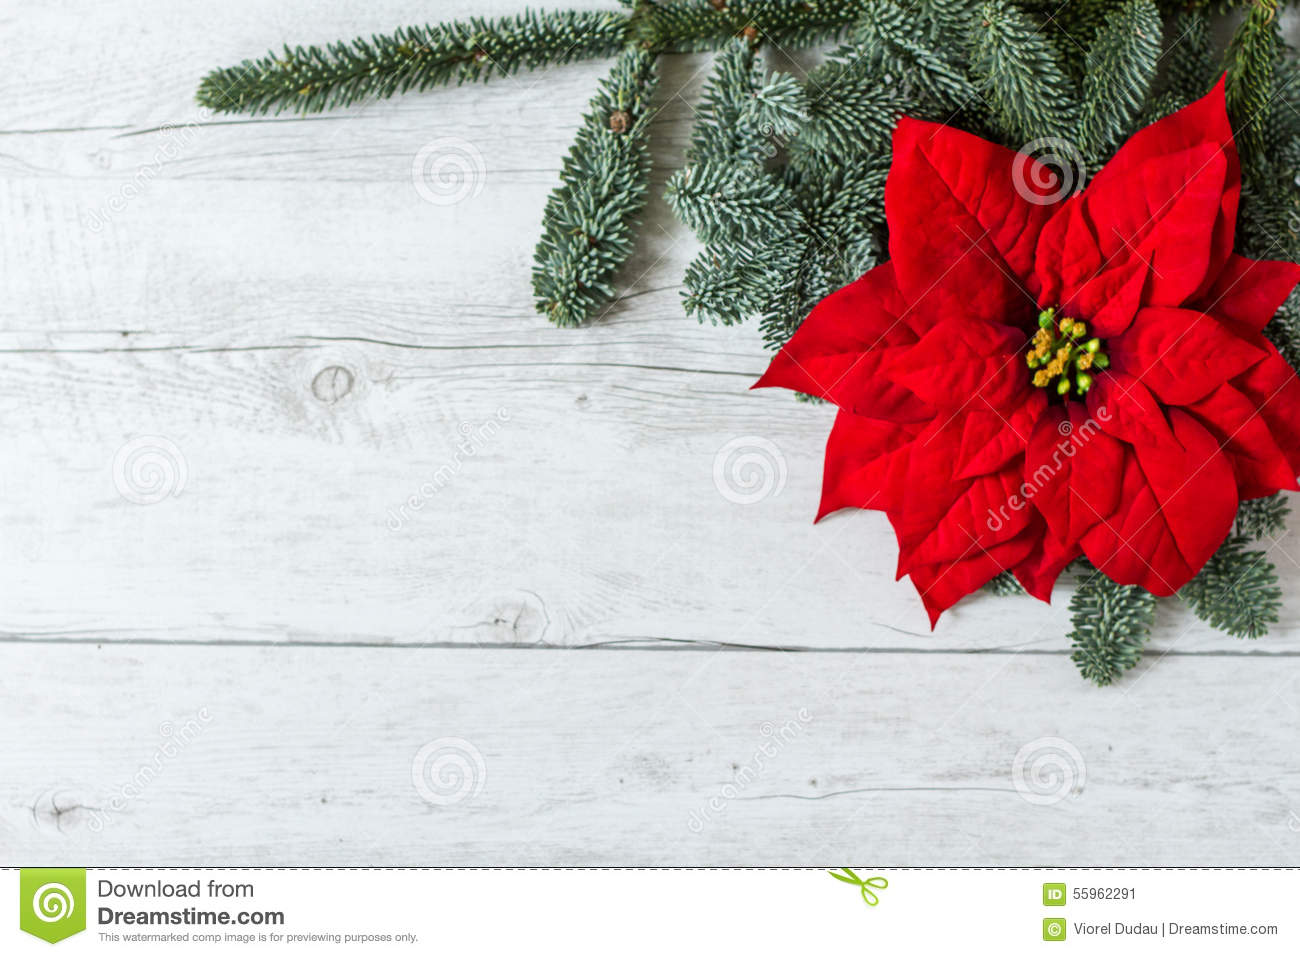 free christmas desktop background downloads